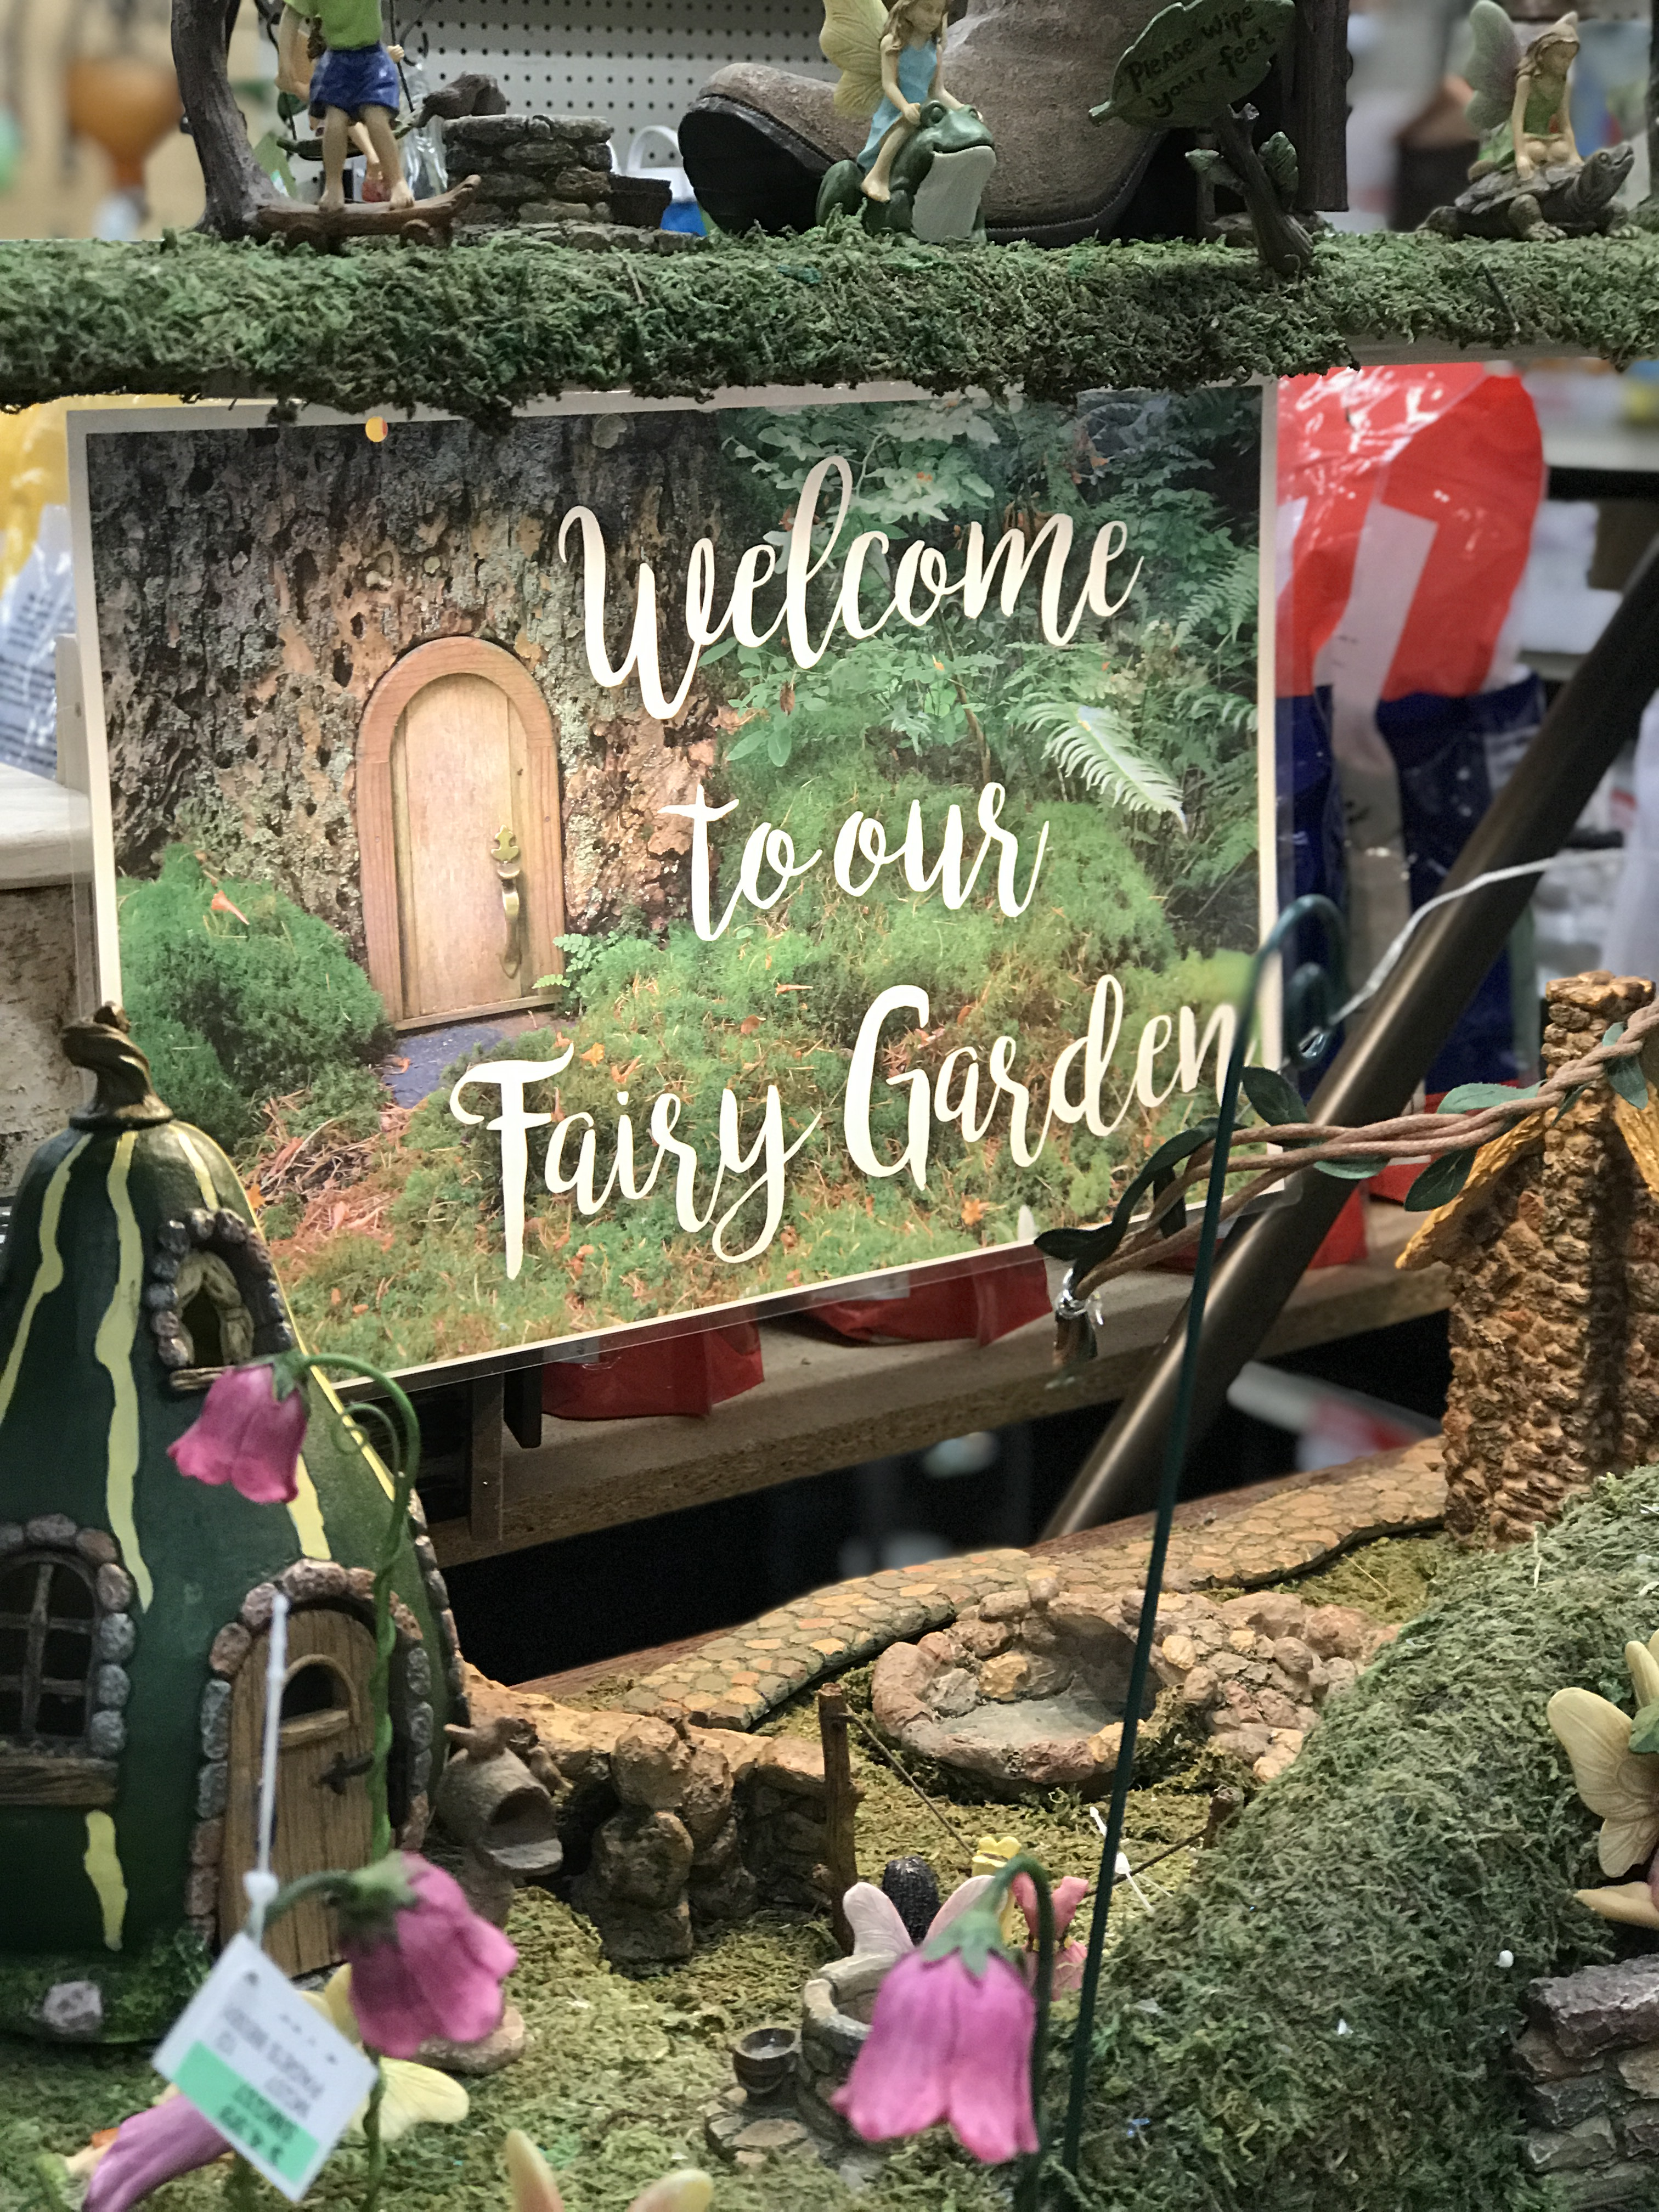 Bring A Little Magic To Your Home Or Garden By Adding A Fairy Garden. These  Little Enchanted Fairy Scenes Will Add Some Fun Into Your Yard This Year.